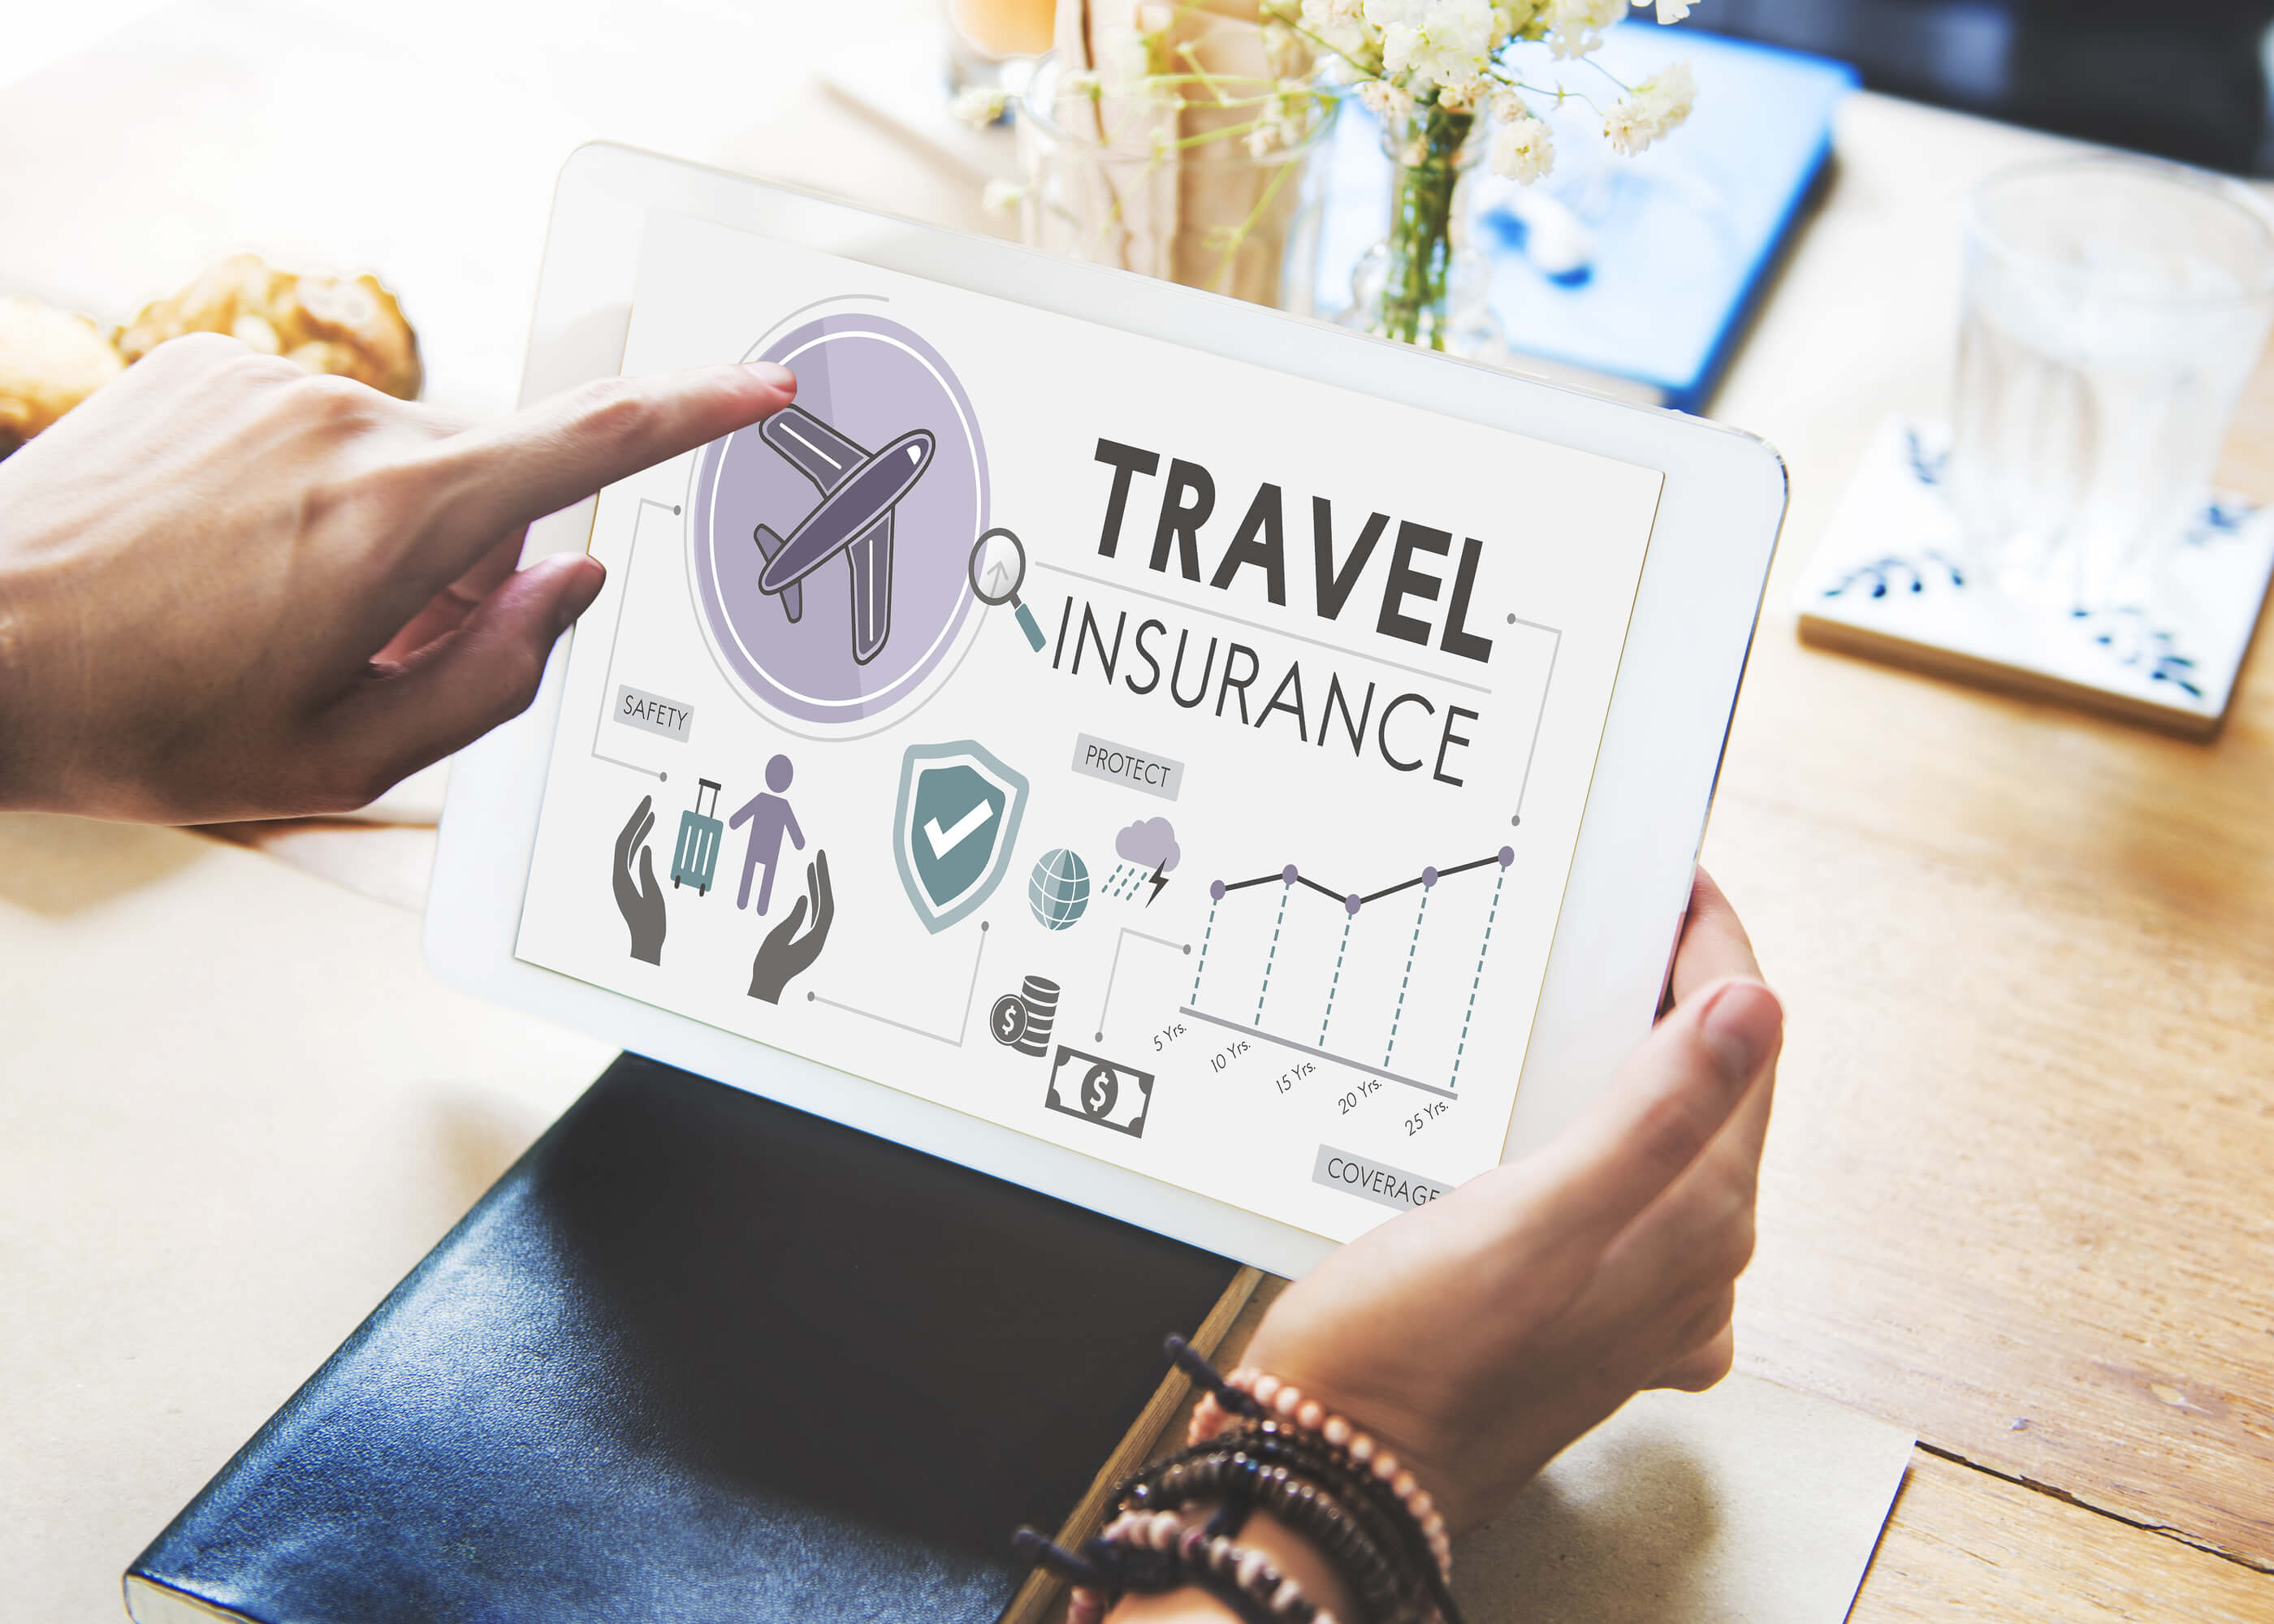 5 Important Things to Be Covered in Your Travel Insurance Policy - Acko